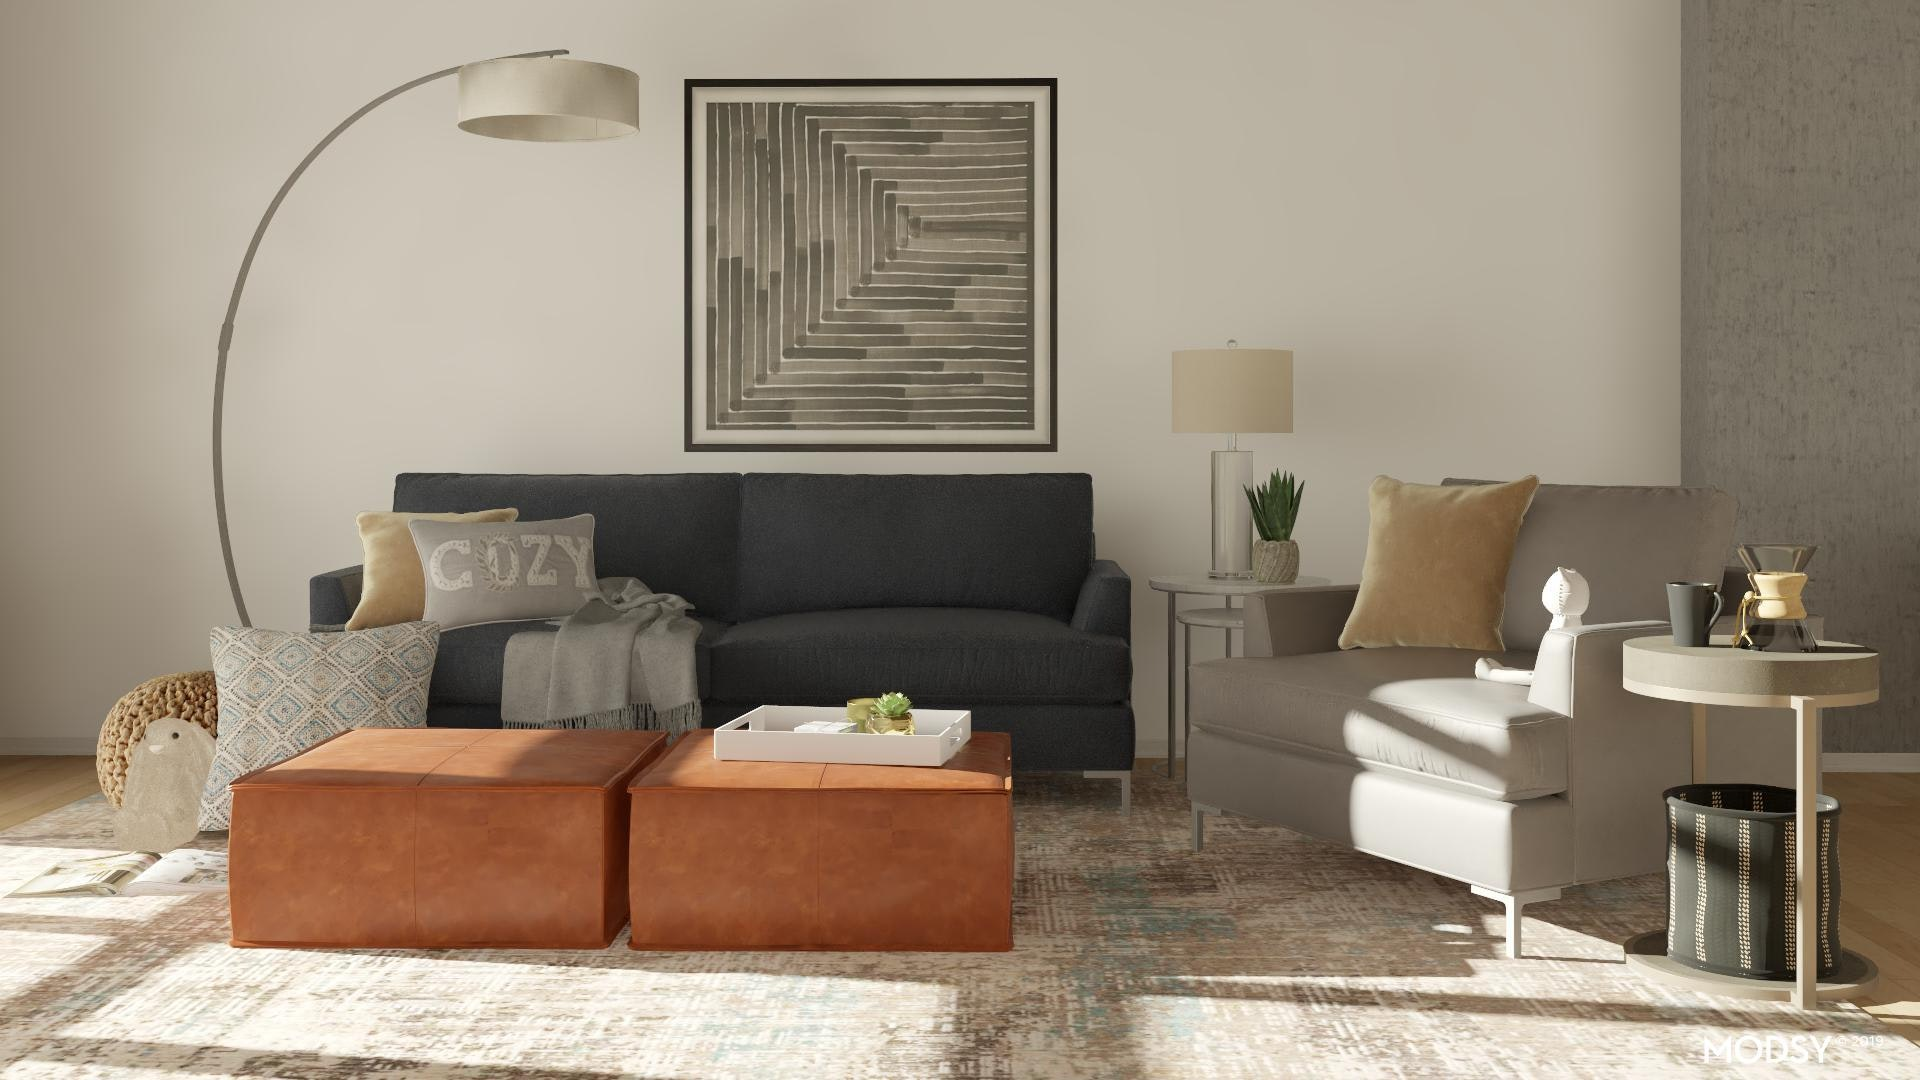 Ottoman Design Ideas And Styles From Modsy Designers